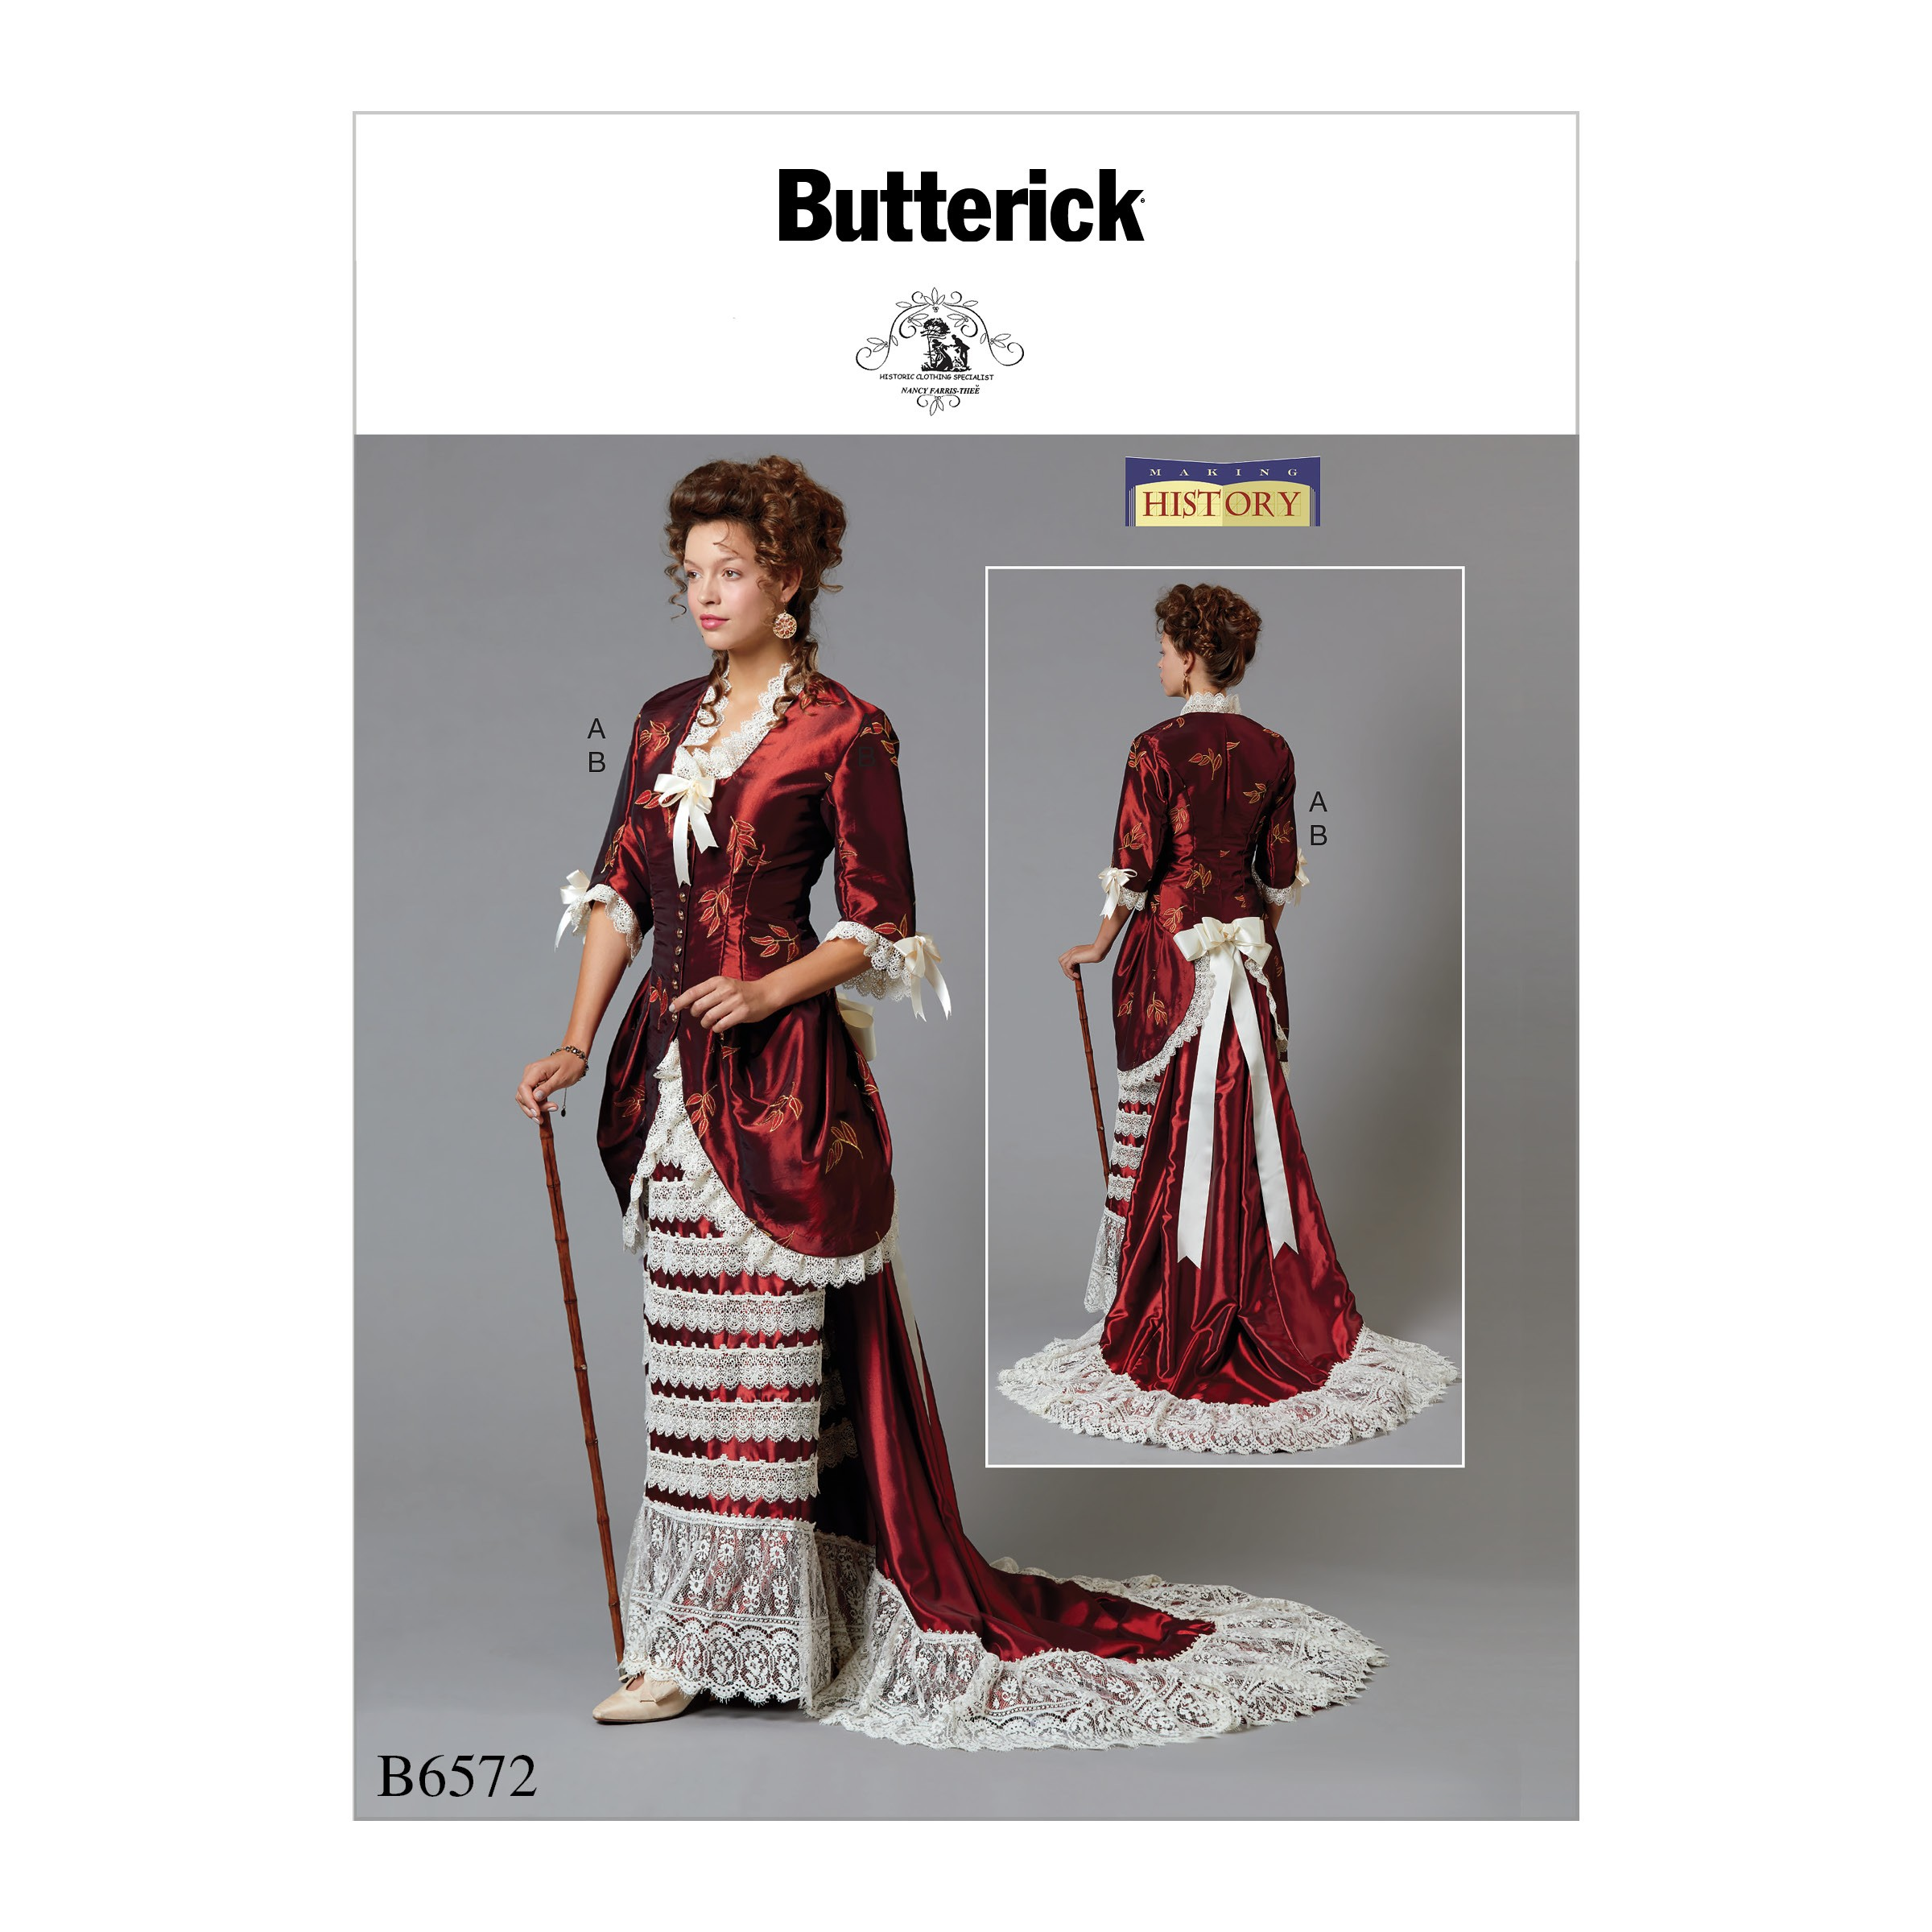 Butterick Sewing Pattern 6572 Misses' Victorian Dress Costume Jacket & Train